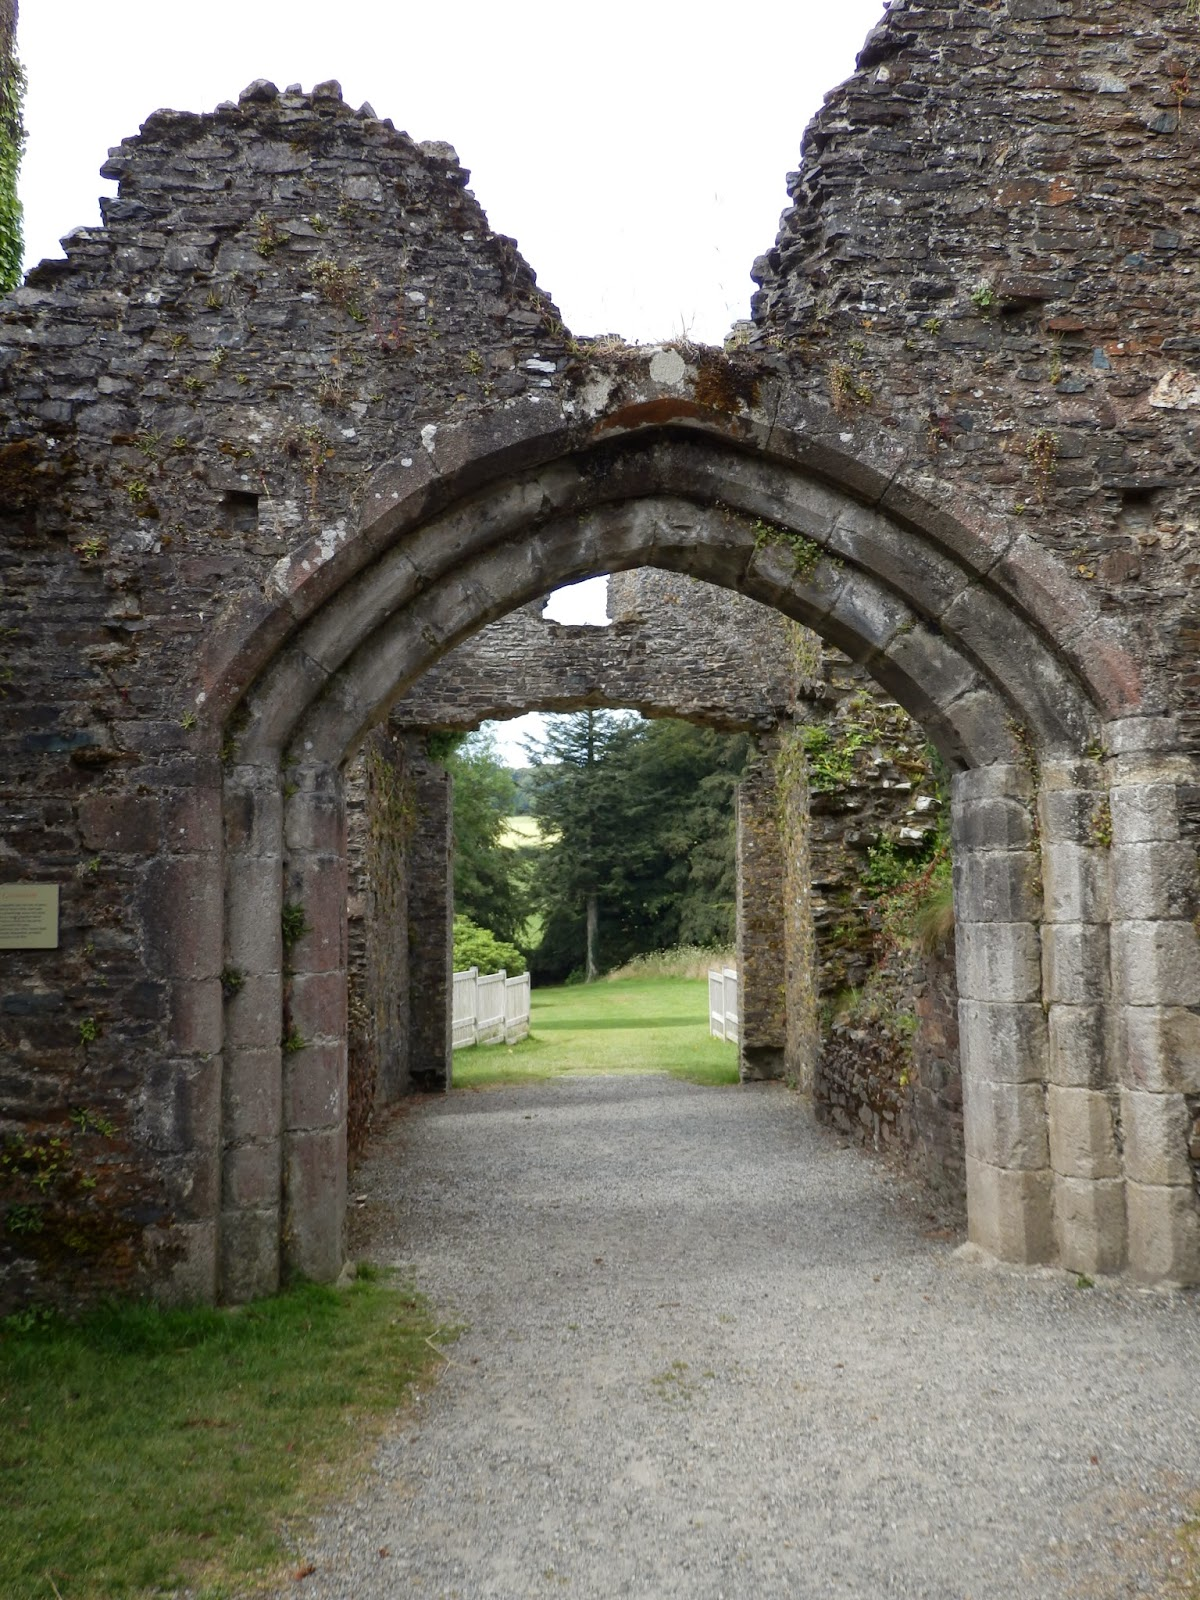 Entrance to Restormel Castle